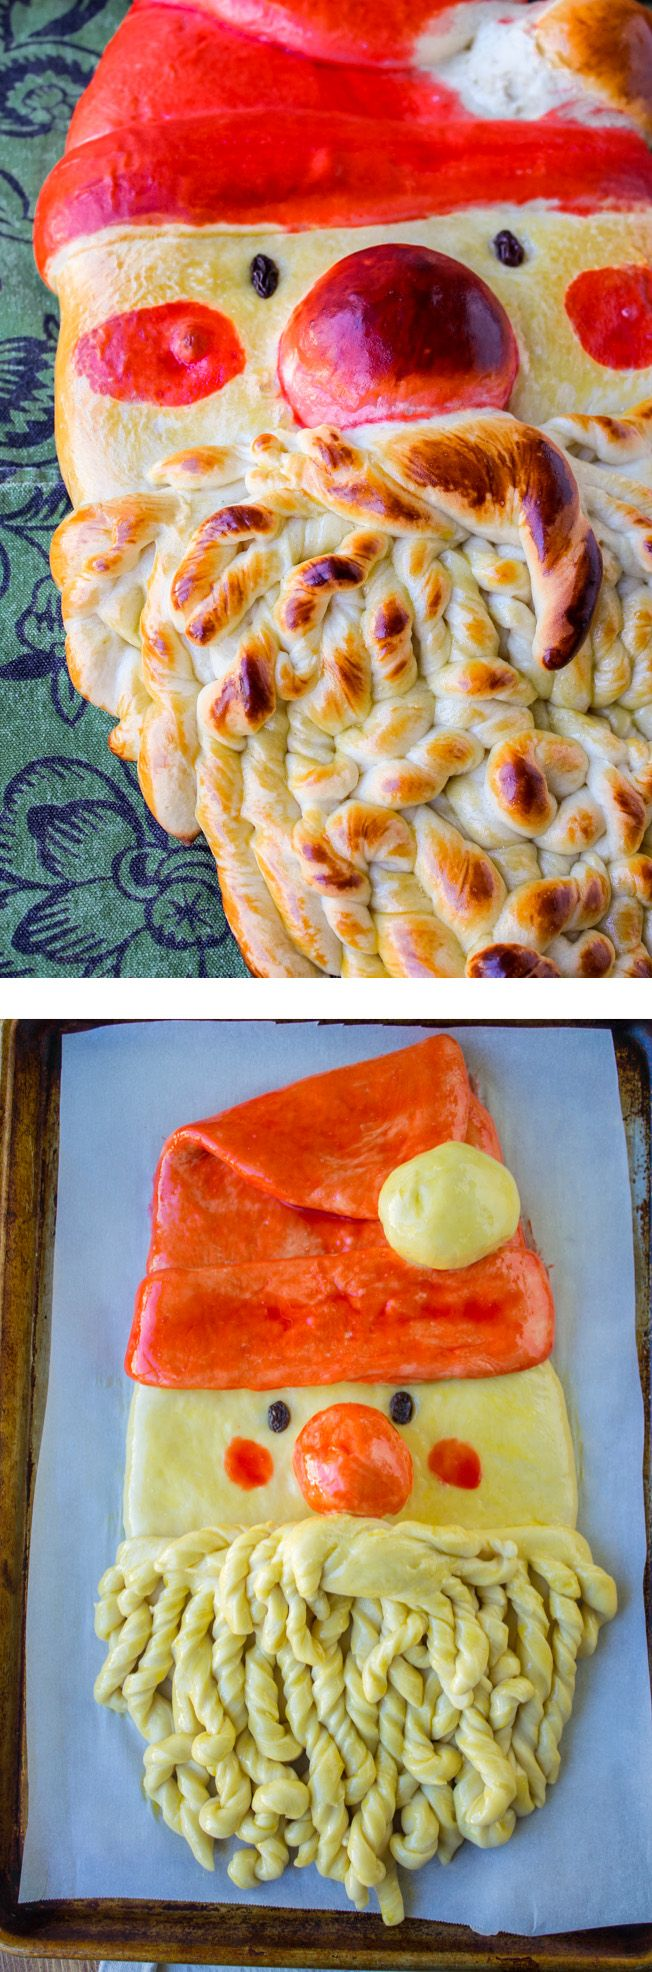 How to Make Golden Santa Bread (Tutorial) - The Food Charlatan // It's easier than it looks! Perfect breakfast for Christmas morning.